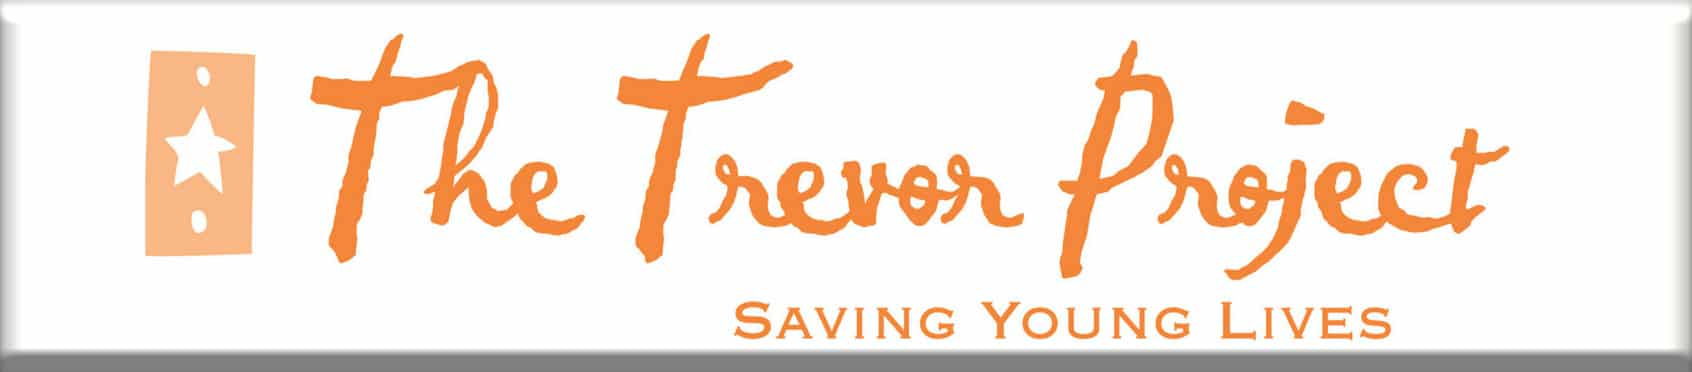 The Trevor Project National help line for LGBT people in need